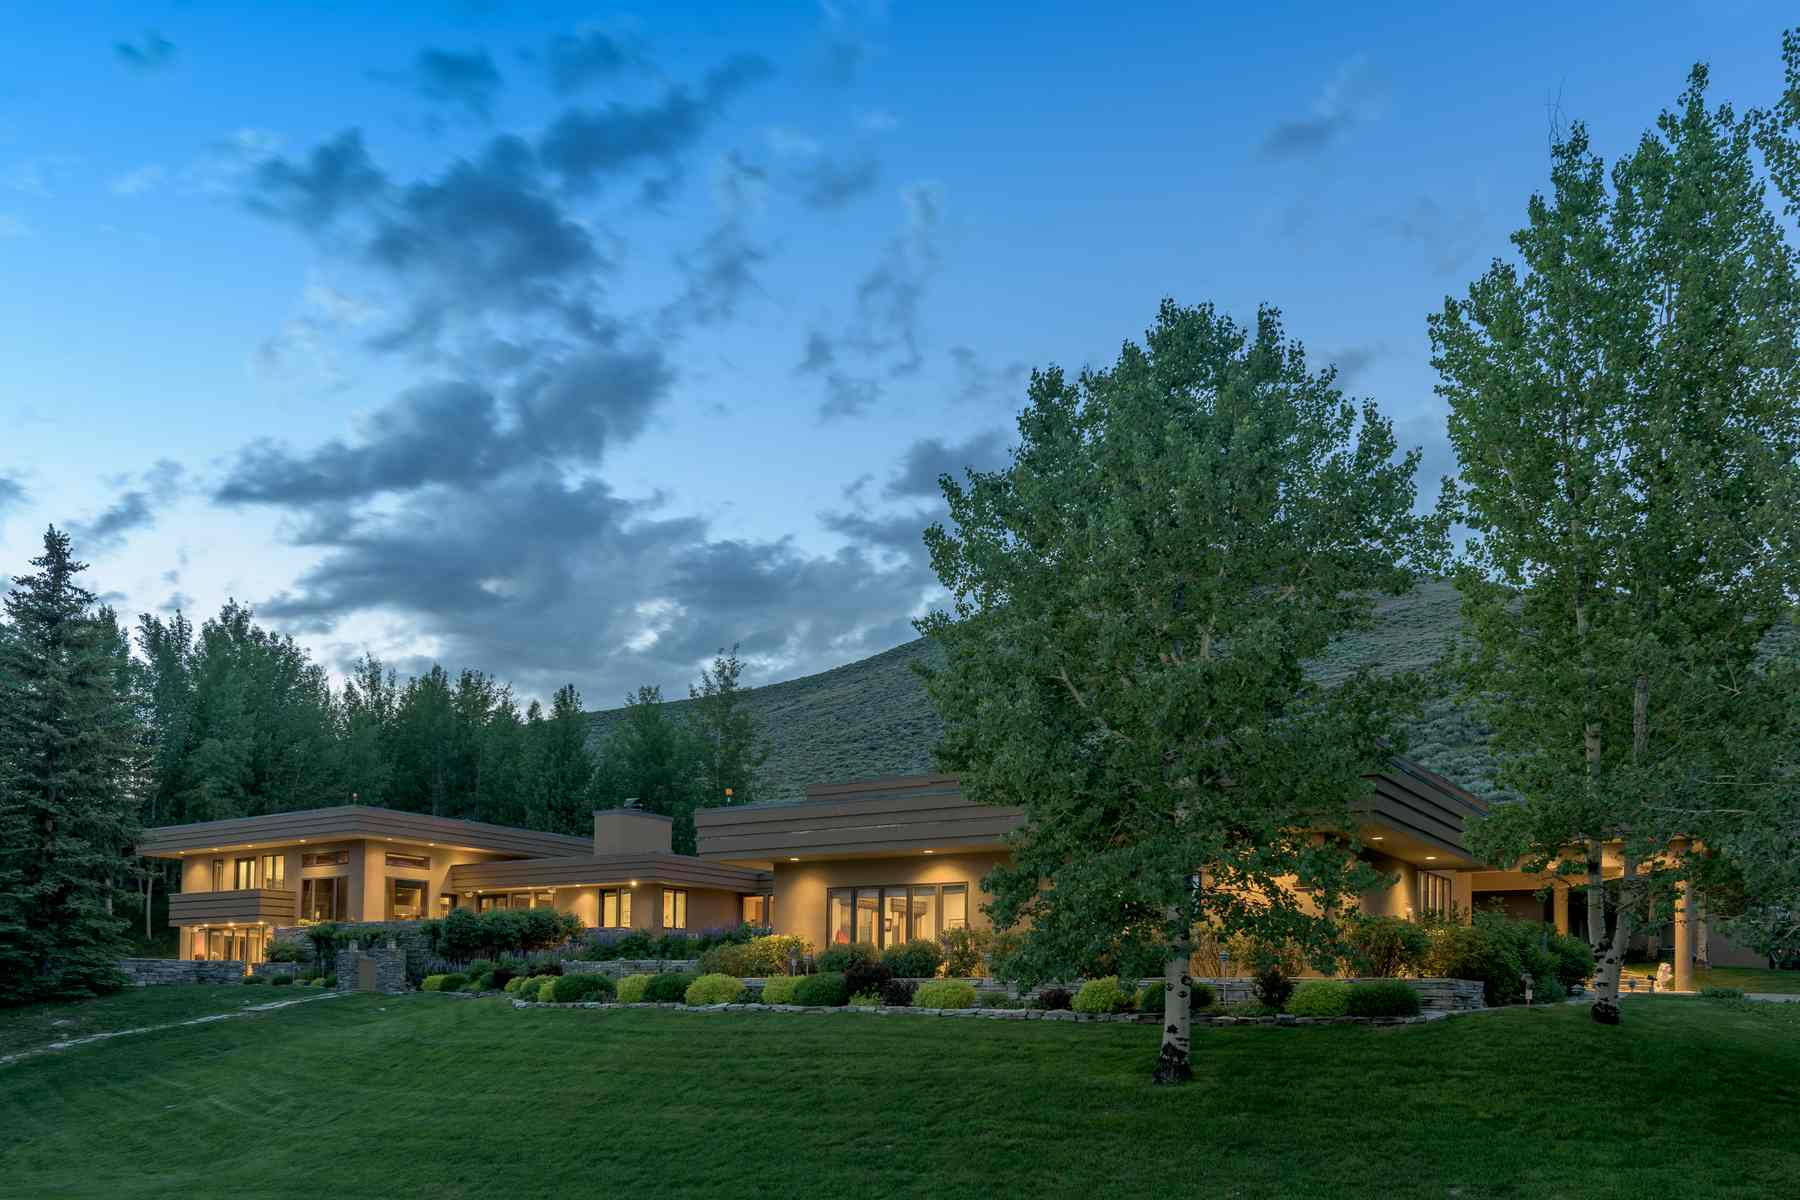 Single Family Home for Sale at Spectacular Elevated Setting 455 N. Bigwood Drive Ketchum, Idaho 83340 United States